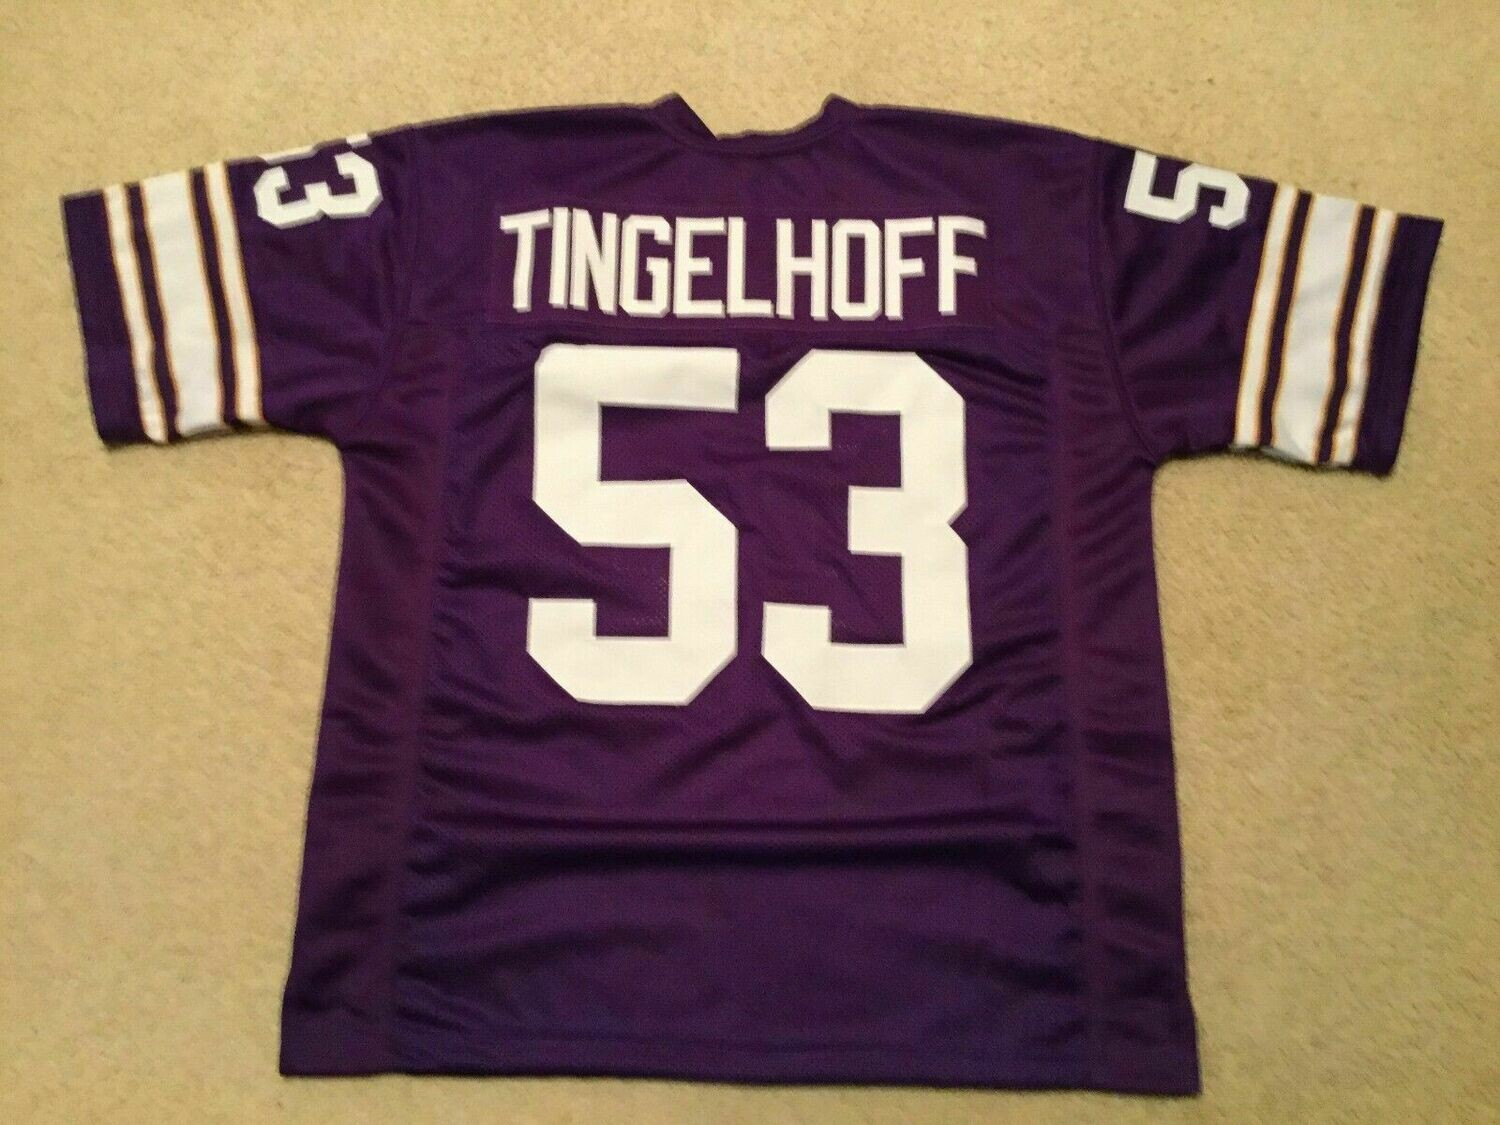 UNSIGNED CUSTOM Sewn Stitched Mick Tingelhoff Purple Jersey